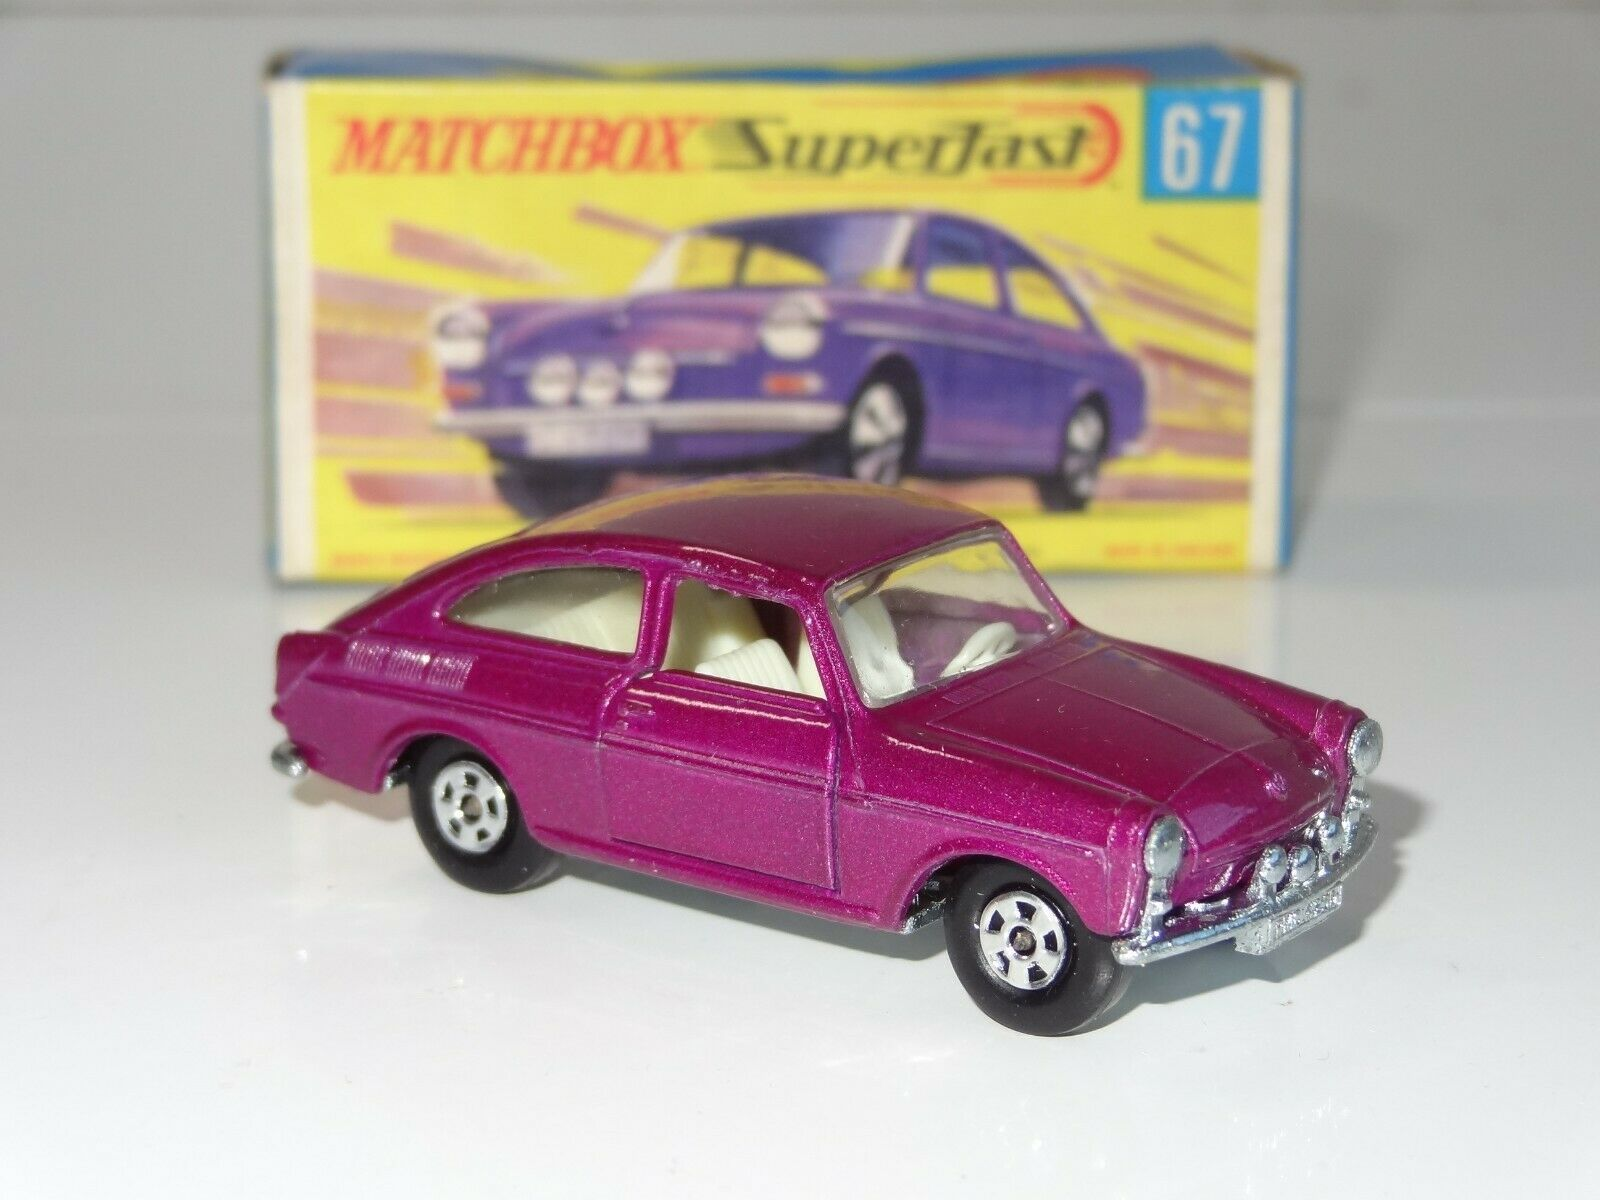 (B) MATCHBOX LESNEY SUPERFAST vw volkswagen 1600TL  - 67  distribution globale